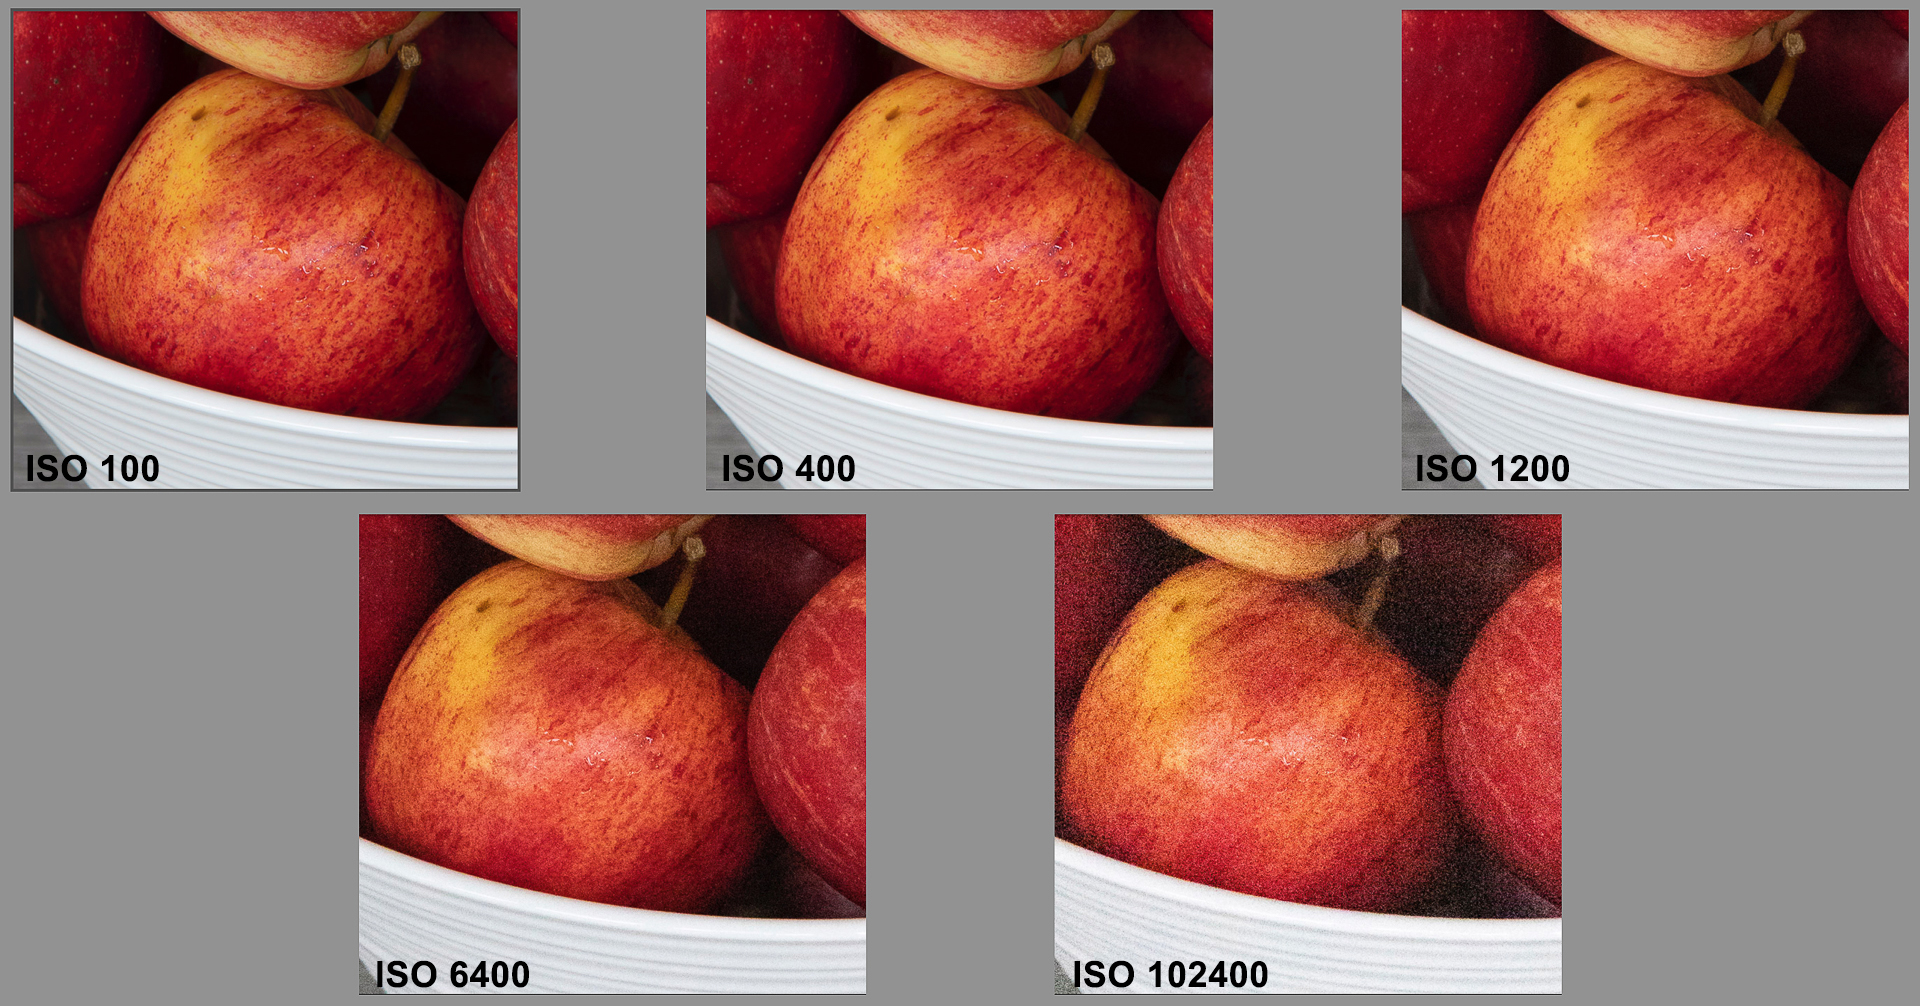 Image of an apple shown with different levels of ISO